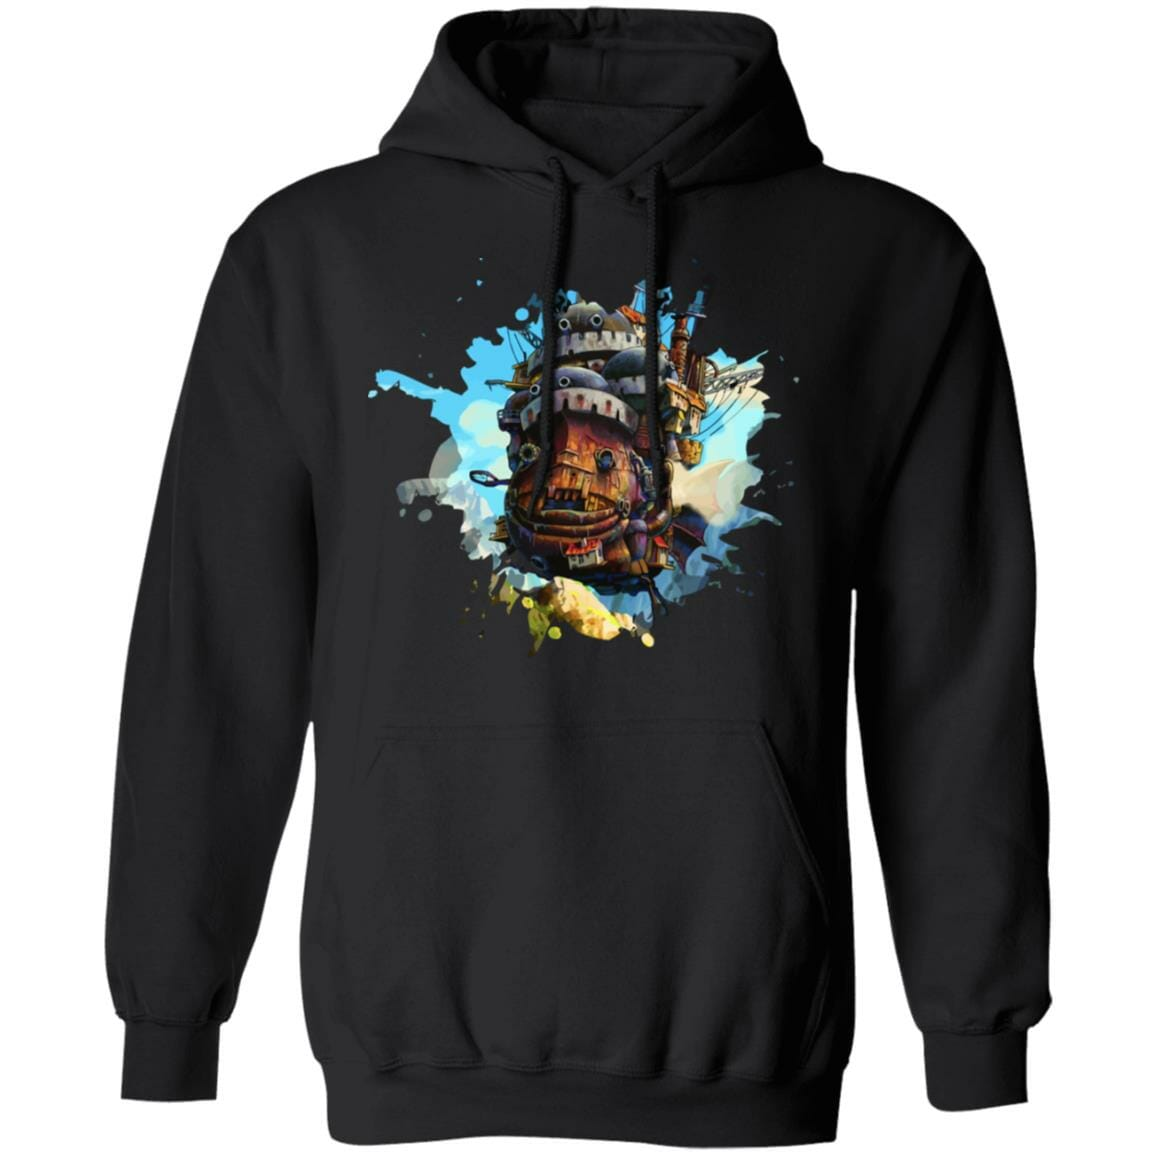 Howl's Moving Castle Painting Hoodie